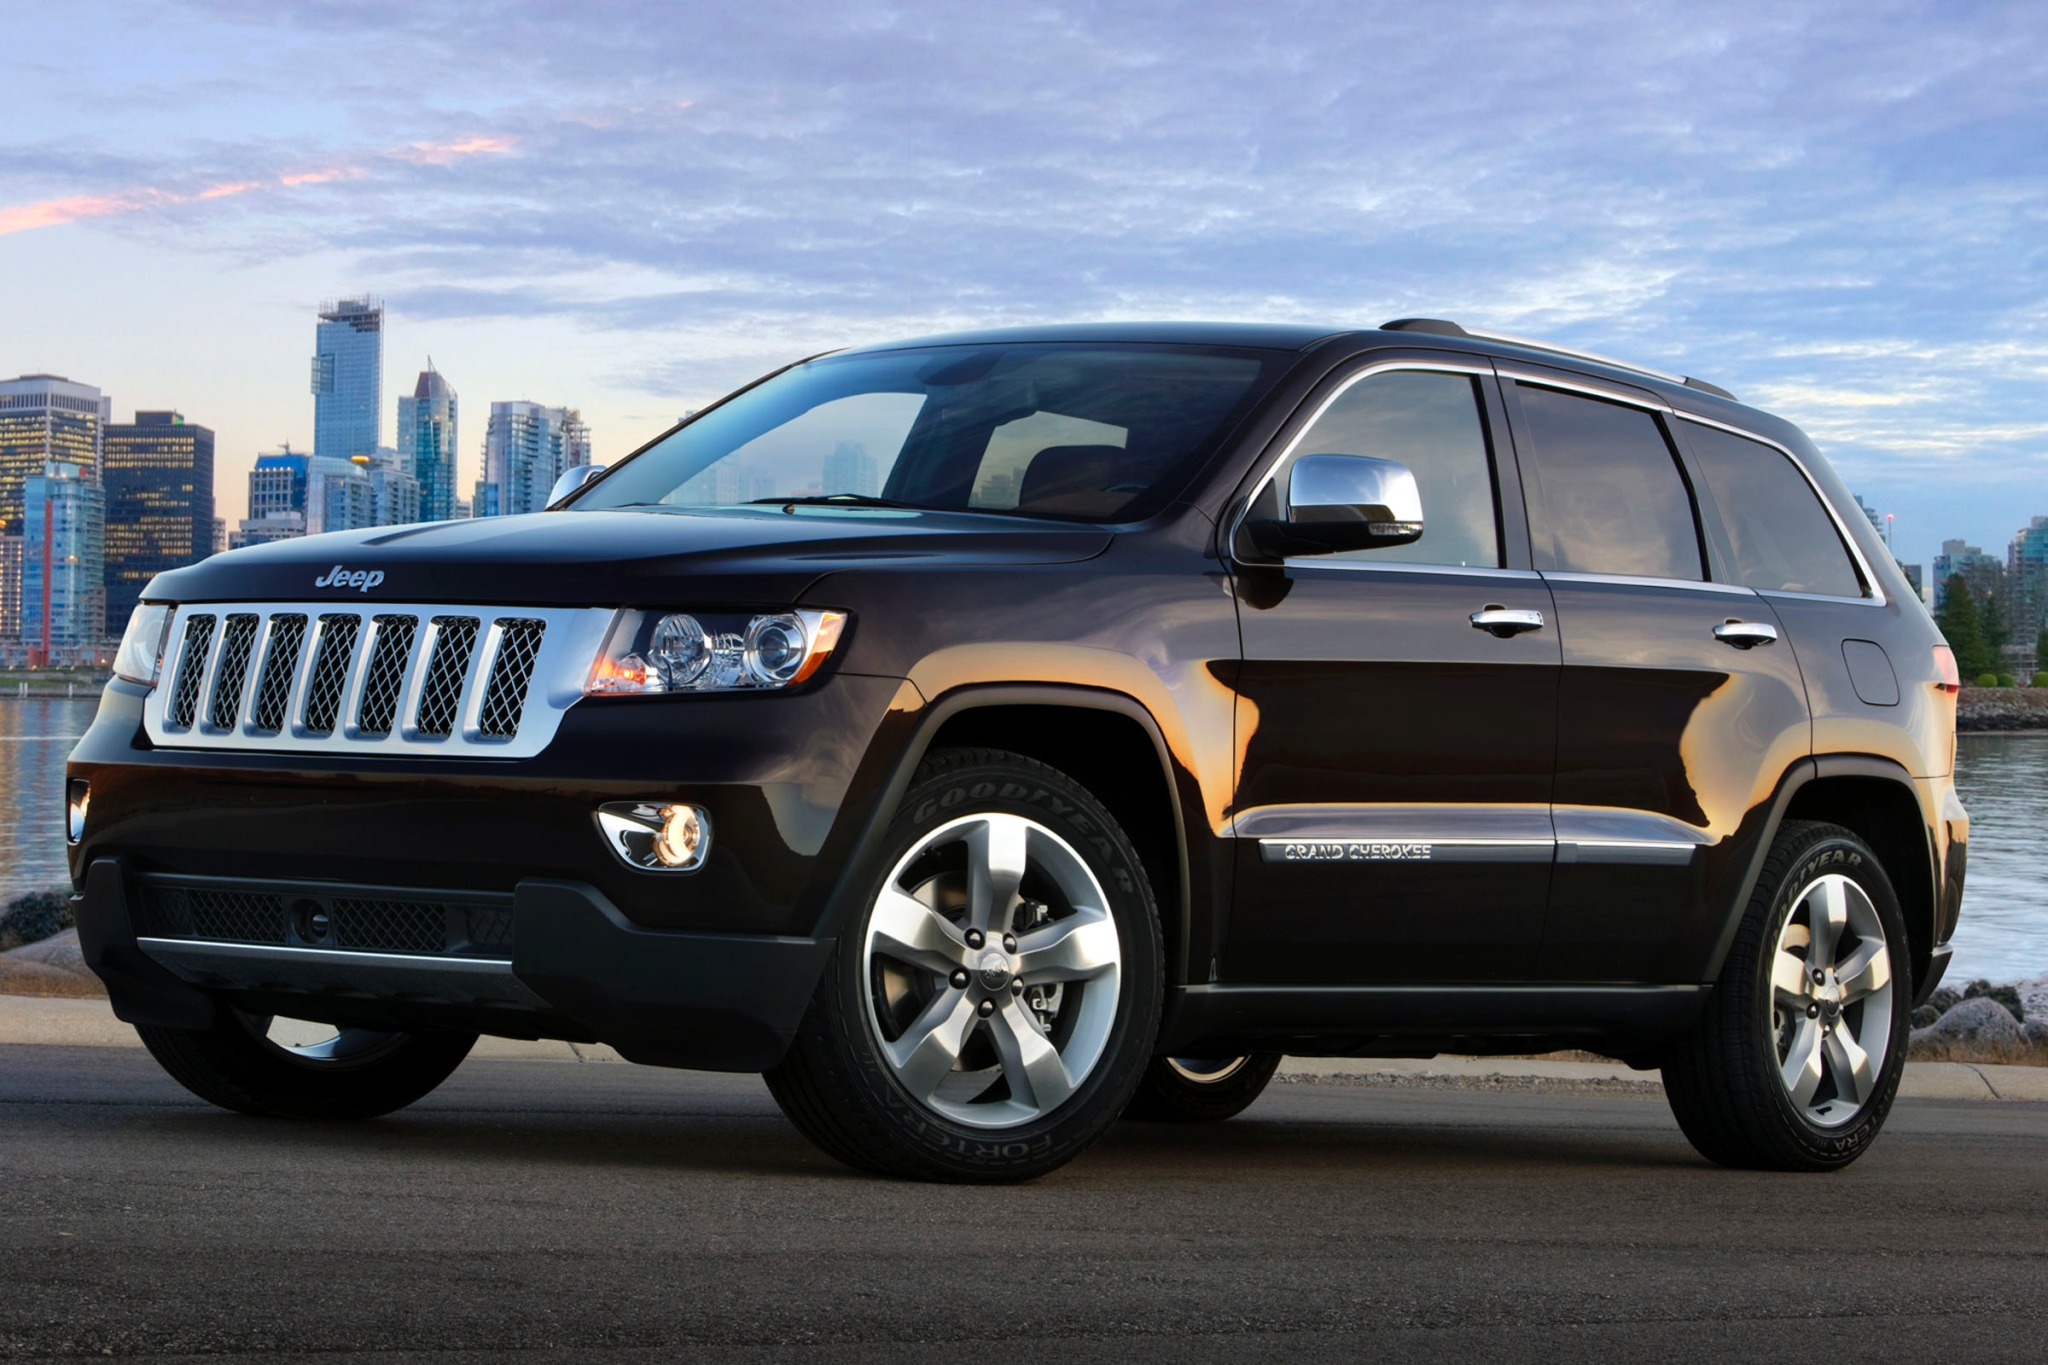 2013 jeep grand cherokee 4dr suv overland fq oem 5 2048